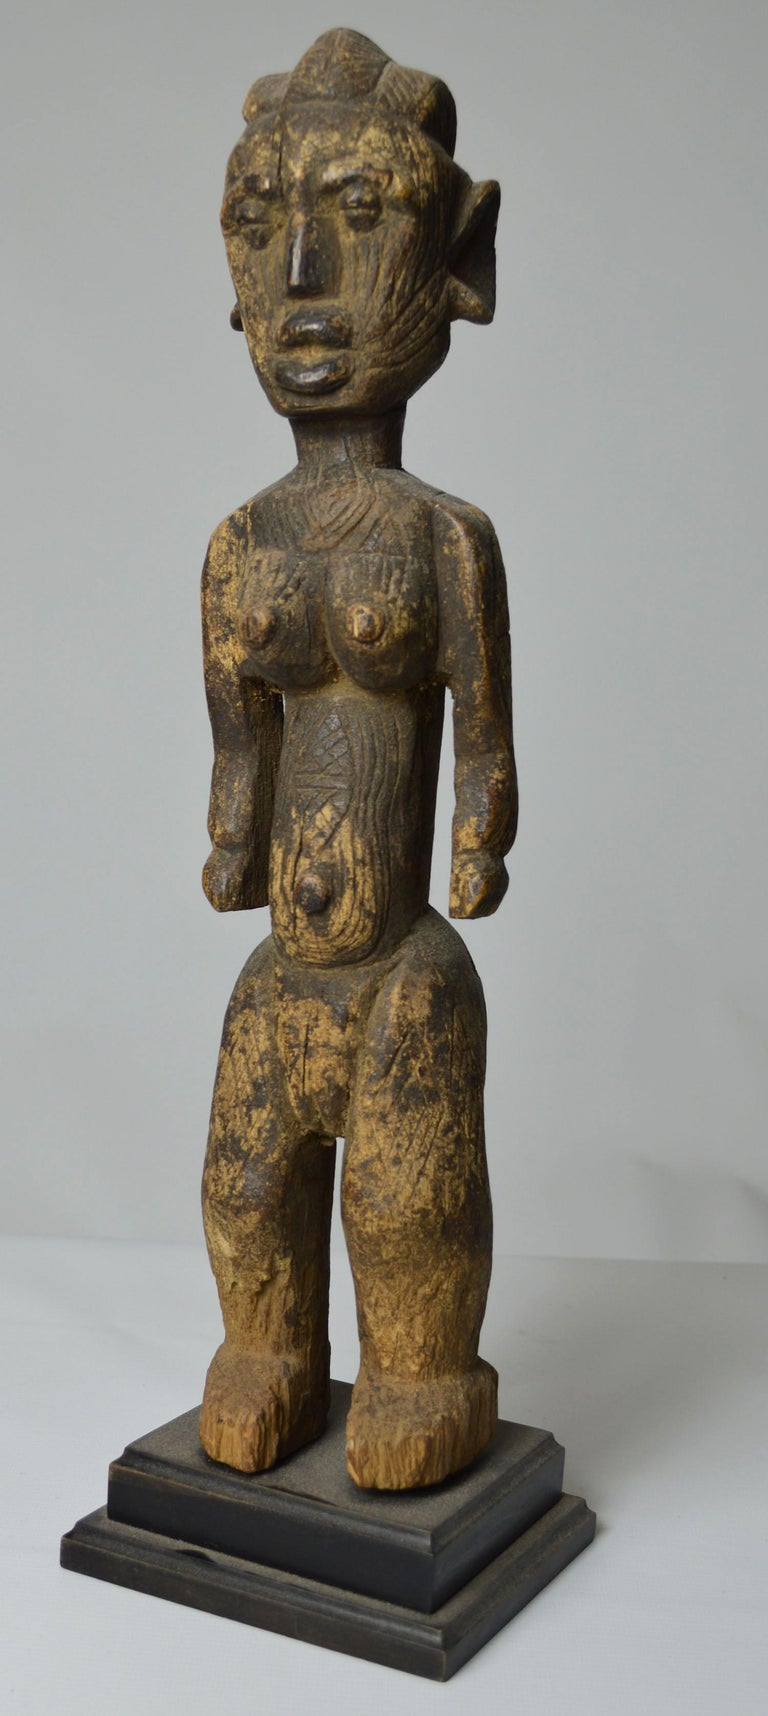 A rare Himbi fetish figure Benue river Nigeria  This is a rare Himbi fetish from the Benue river area of Nigeria  The Himbi are a sub tribe of the larger Afo tribe who inhabit parts of the remote Benue river area in Nigeria  The powerful standing